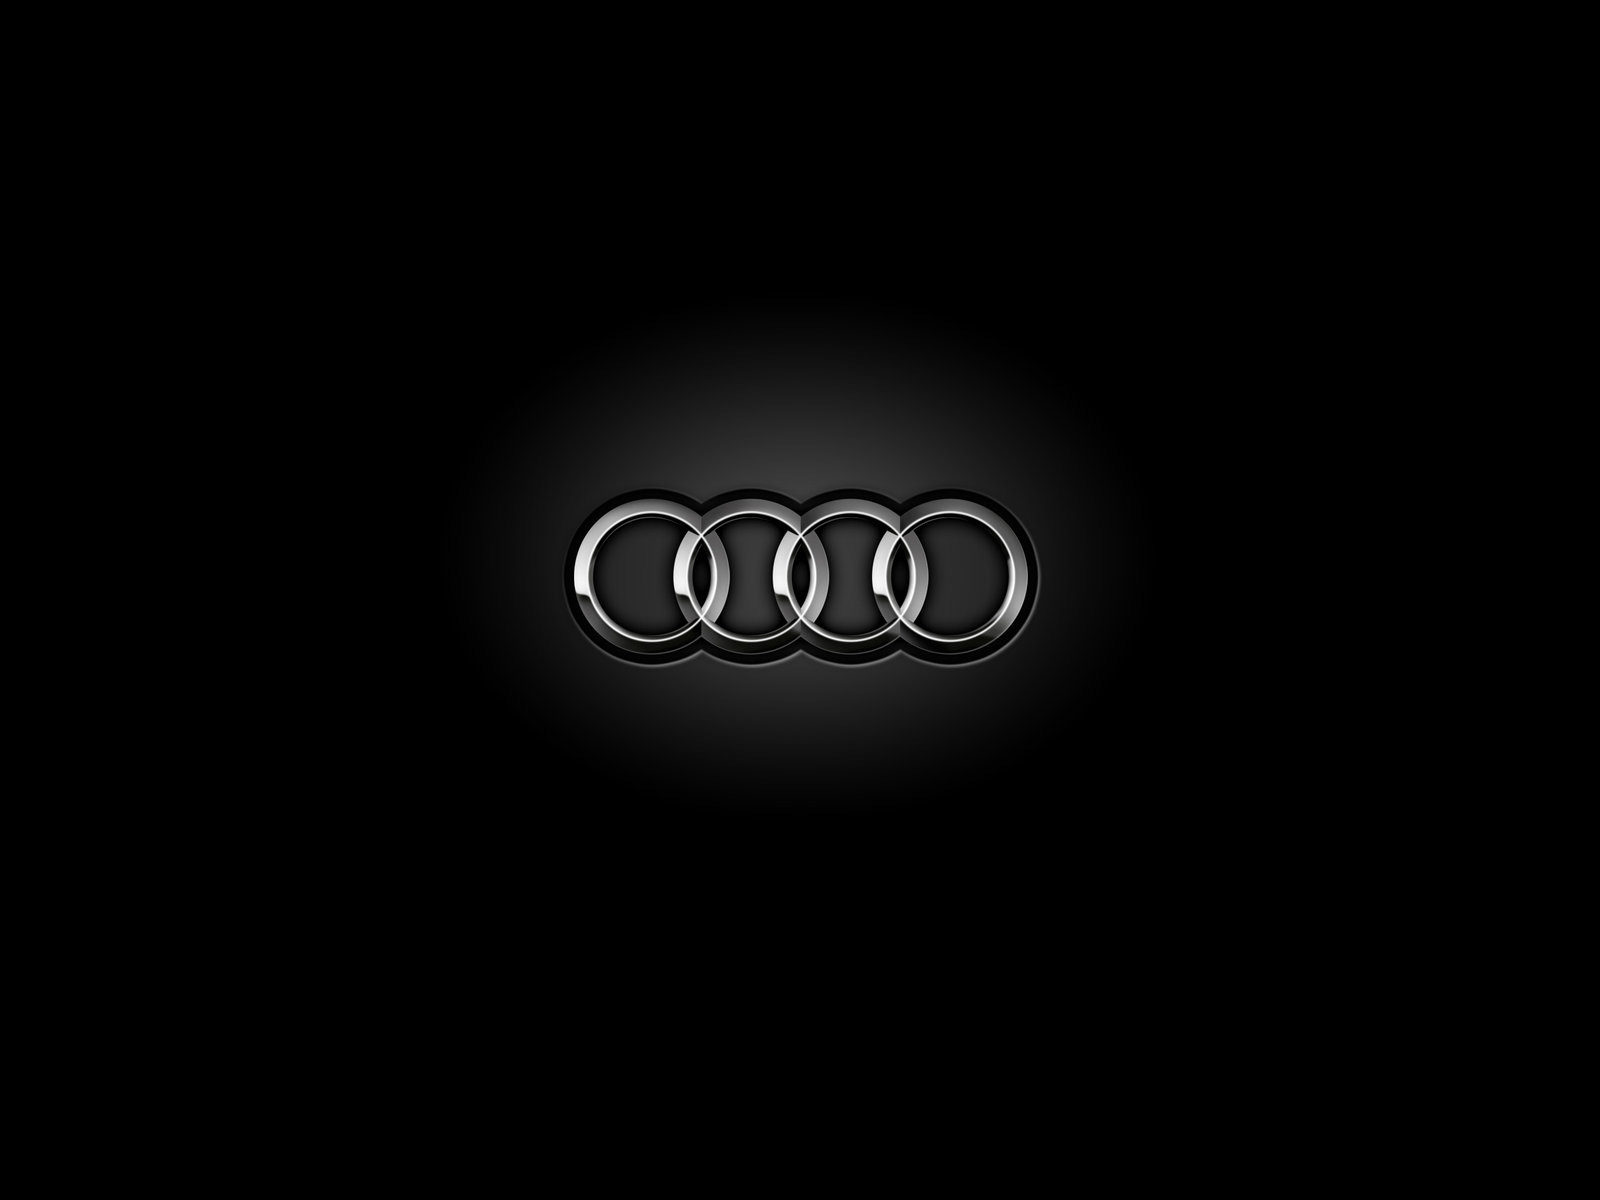 47 Audi Logo Hd Wallpaper On Wallpapersafari